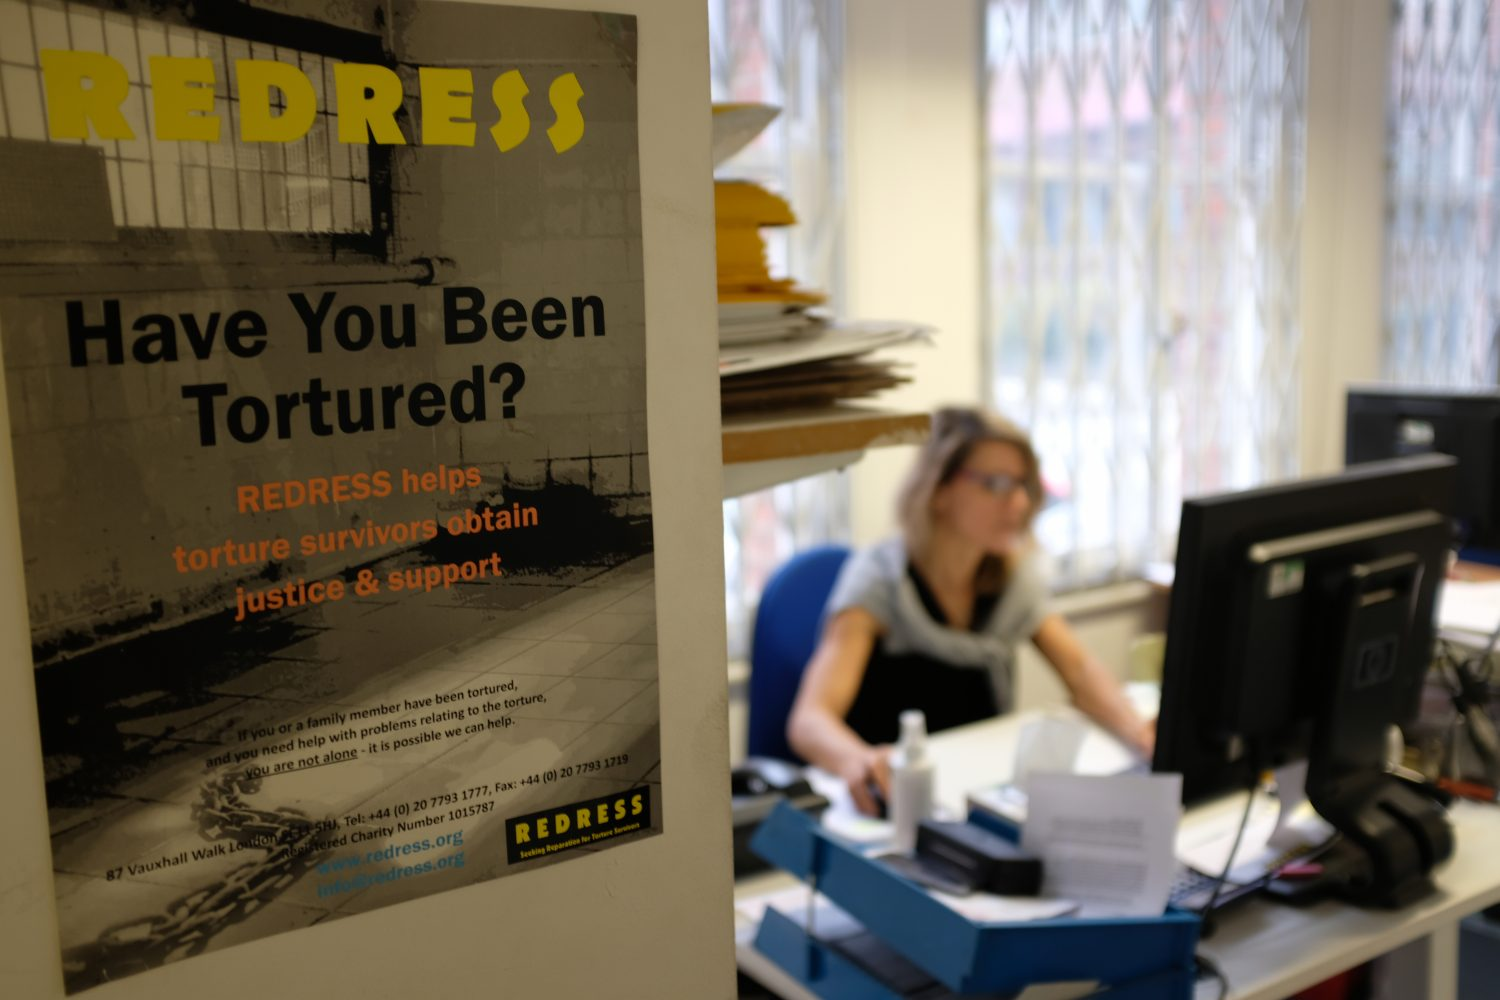 Our Uk Operations Based Out Of A London Office Is Comprised Diverse And Dedicated Group People That Works On Redress Programmes Campaigns